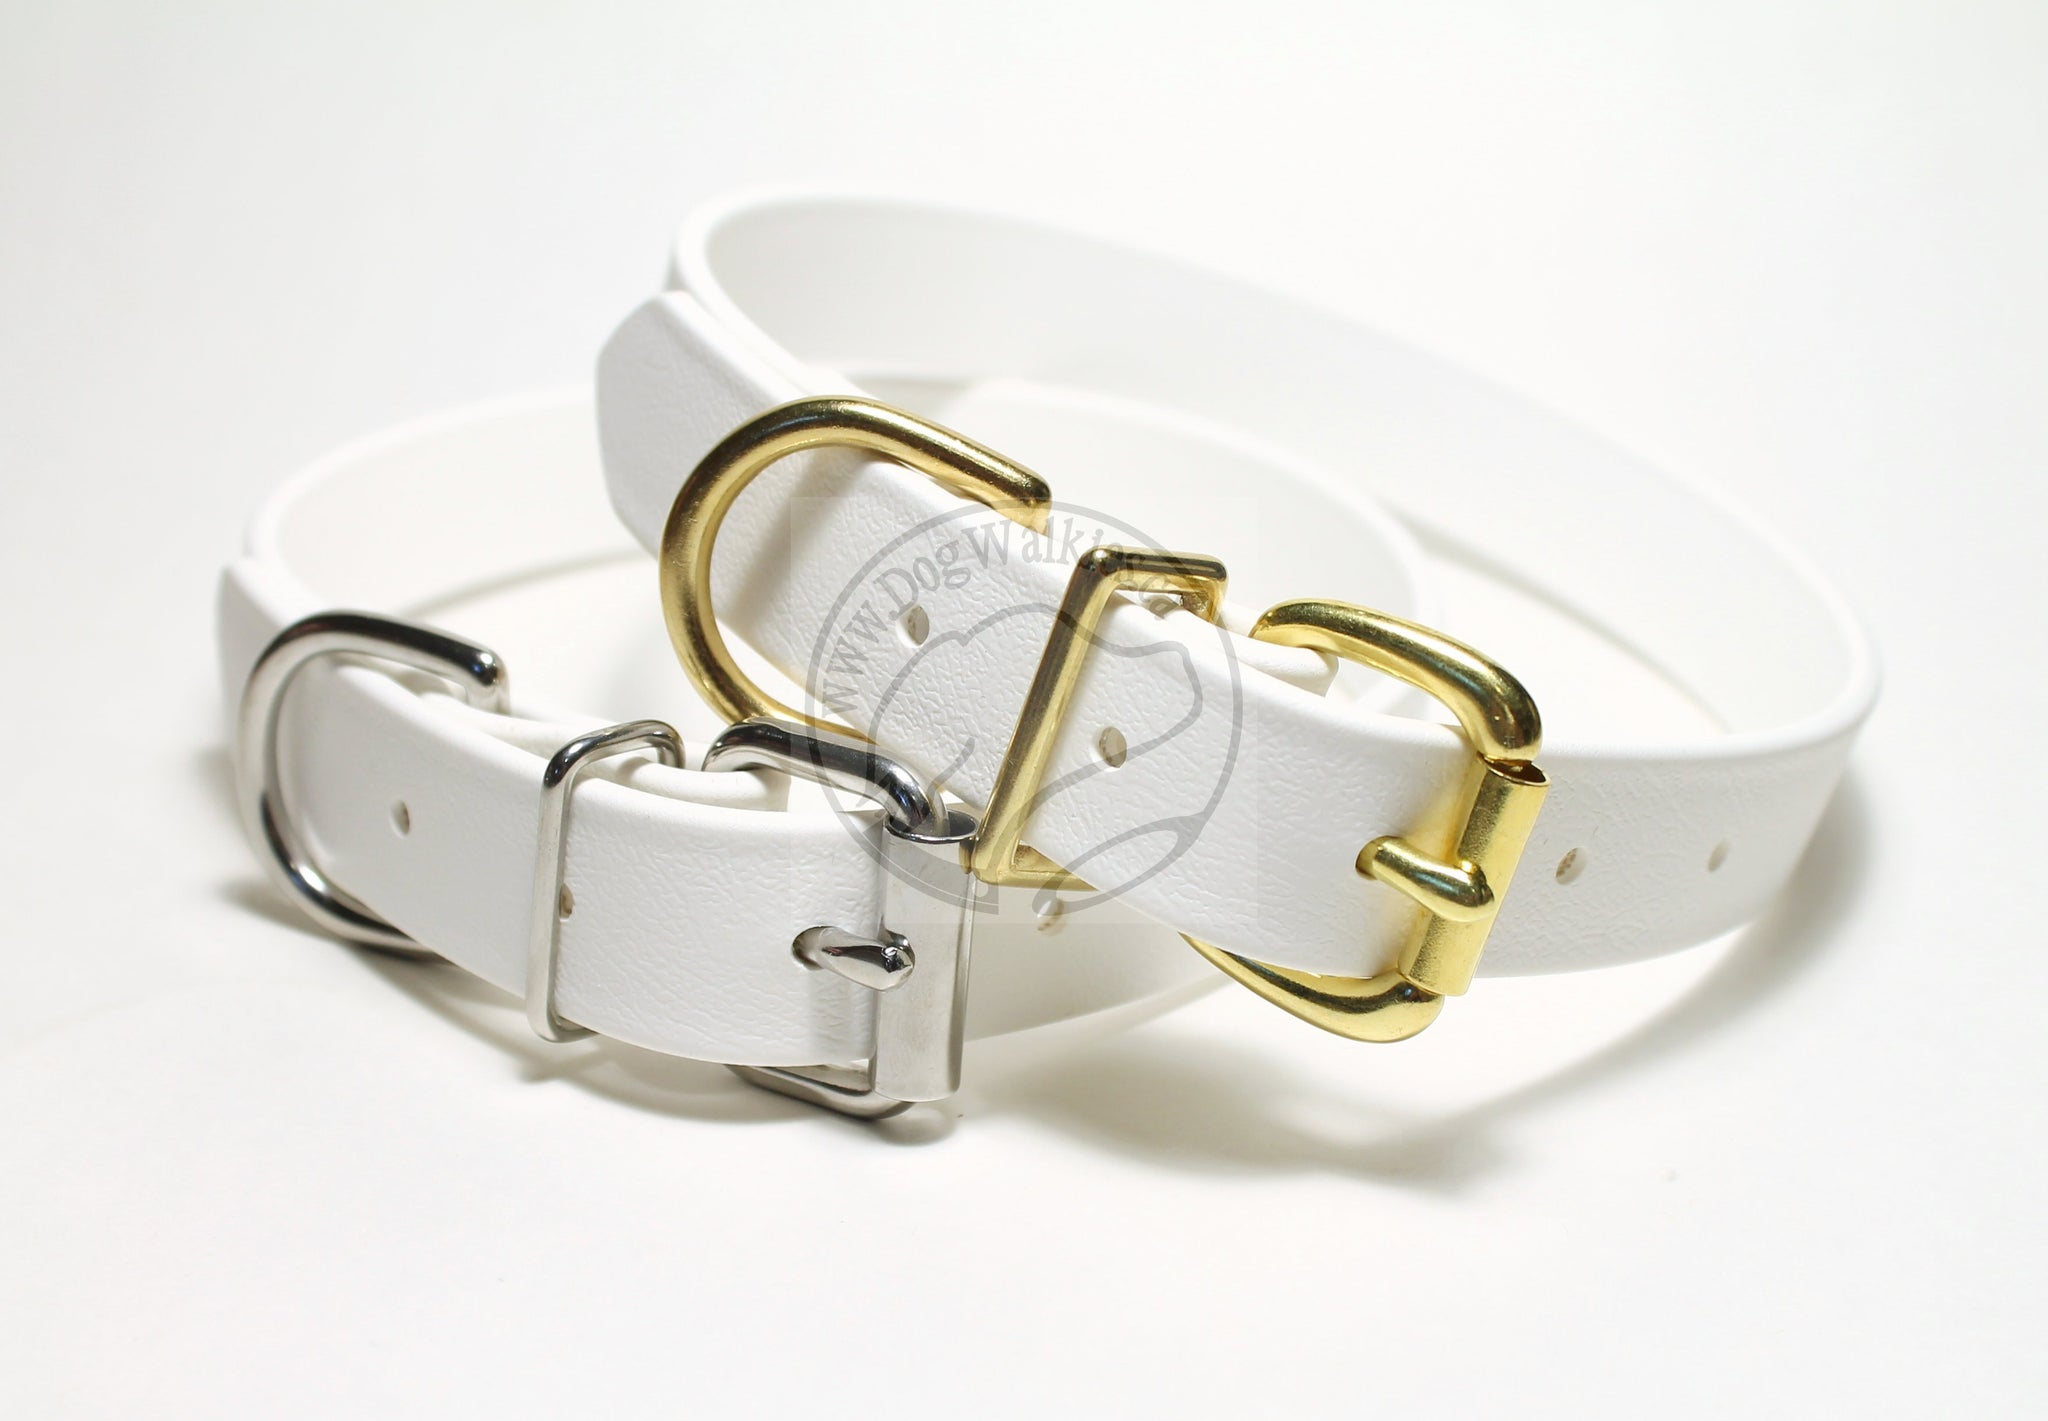 Snow White Biothane Dog Collar - 1 inch (25mm) wide